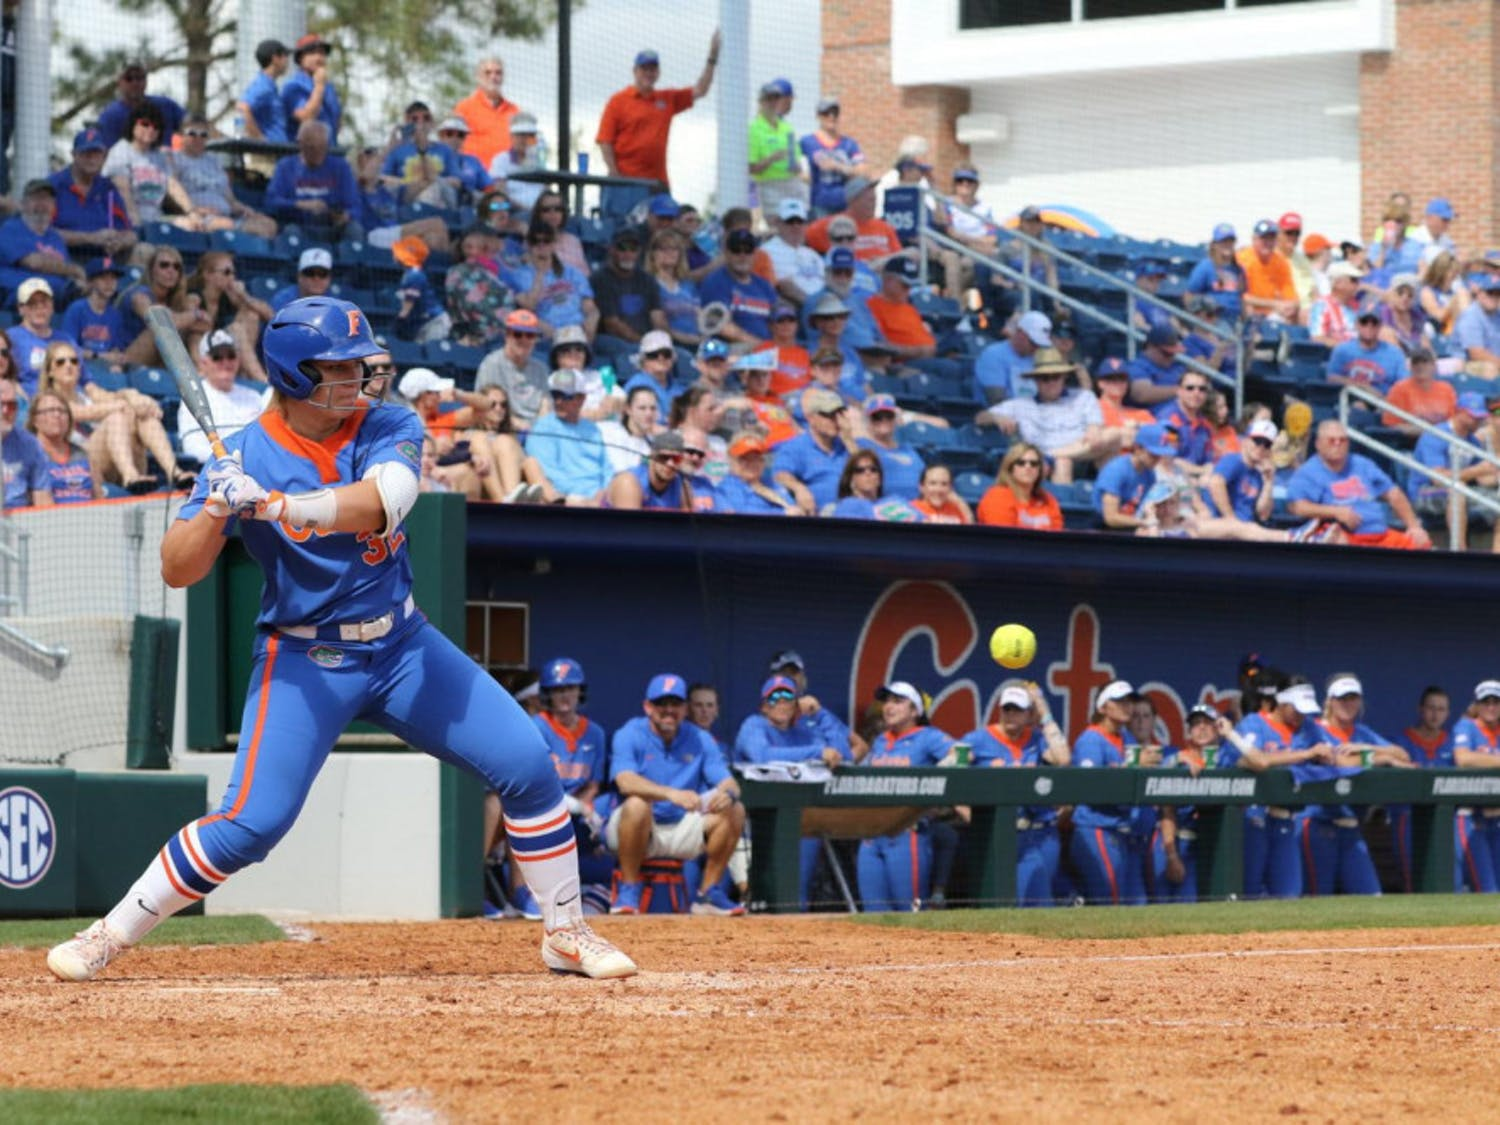 Catcher Kendyl Lindaman batted in a run in the bottom of the fifth inning to help UF defeat the Boston University Terriers on Friday.